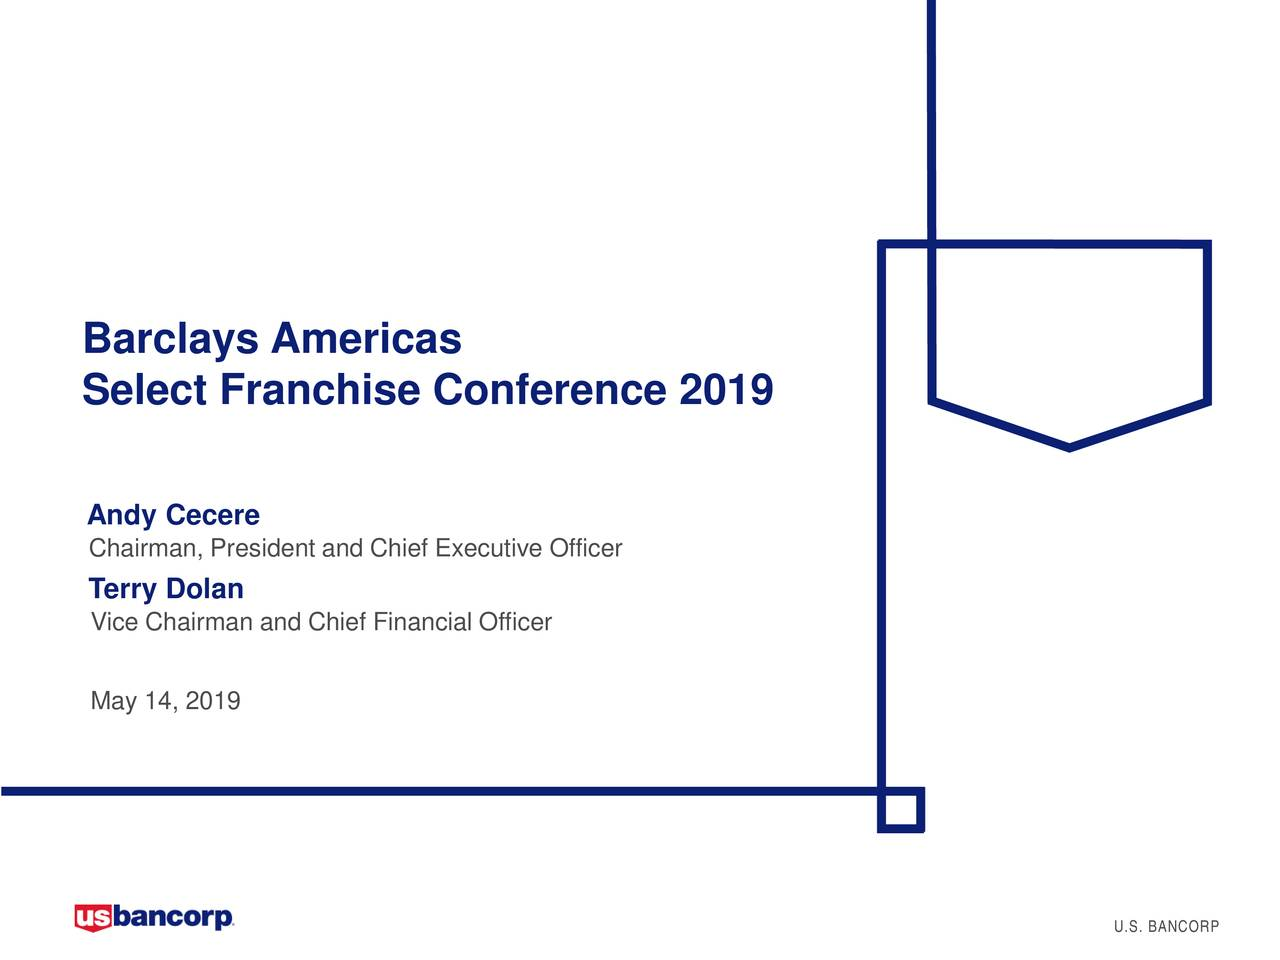 Select Franchise Conference 2019 Andy Cecere Chairman, President and Chief Executive Officer Terry Dolan Vice Chairman and Chief Financial Officer May 14, 2019 U.S. BANCORP